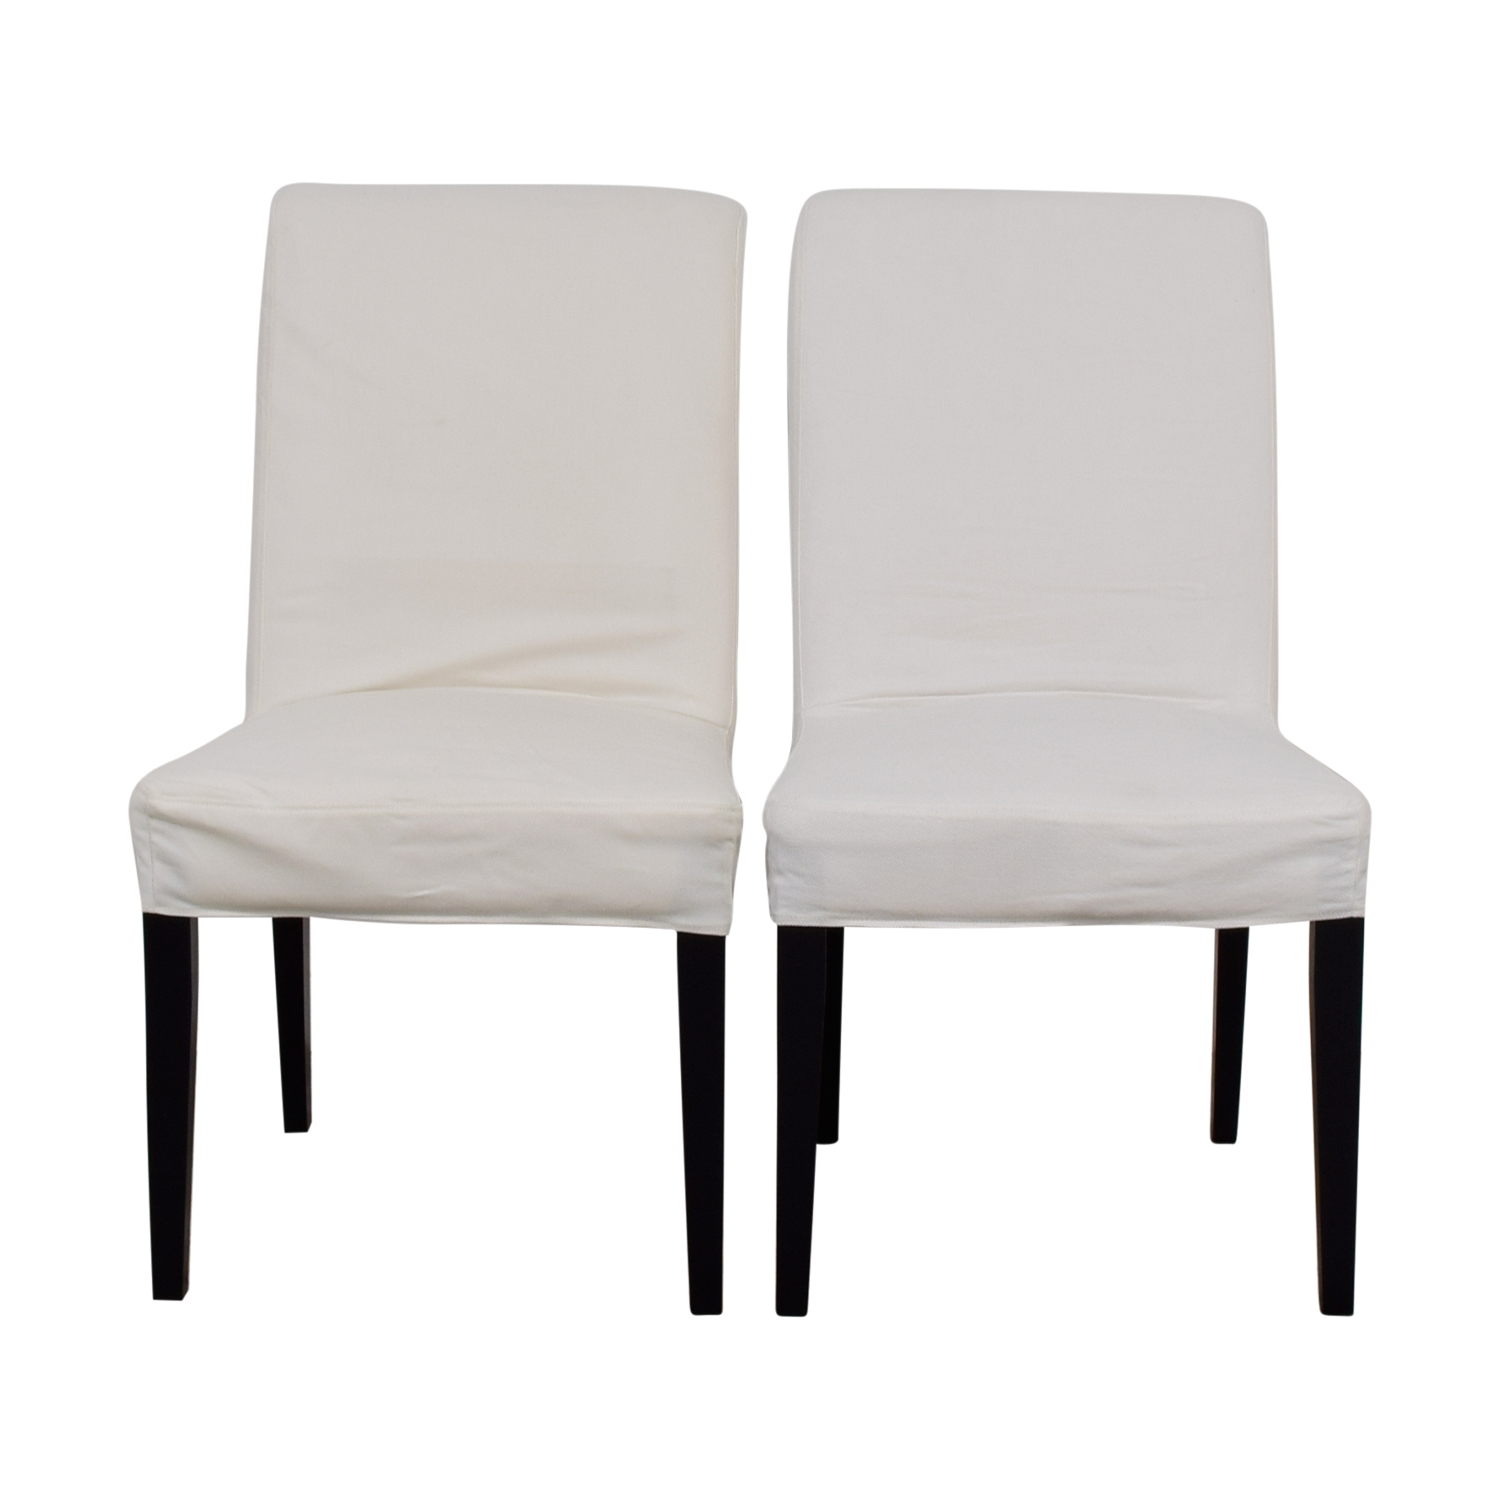 IKEA Hendriksdal Dining Chairs / Dining Chairs